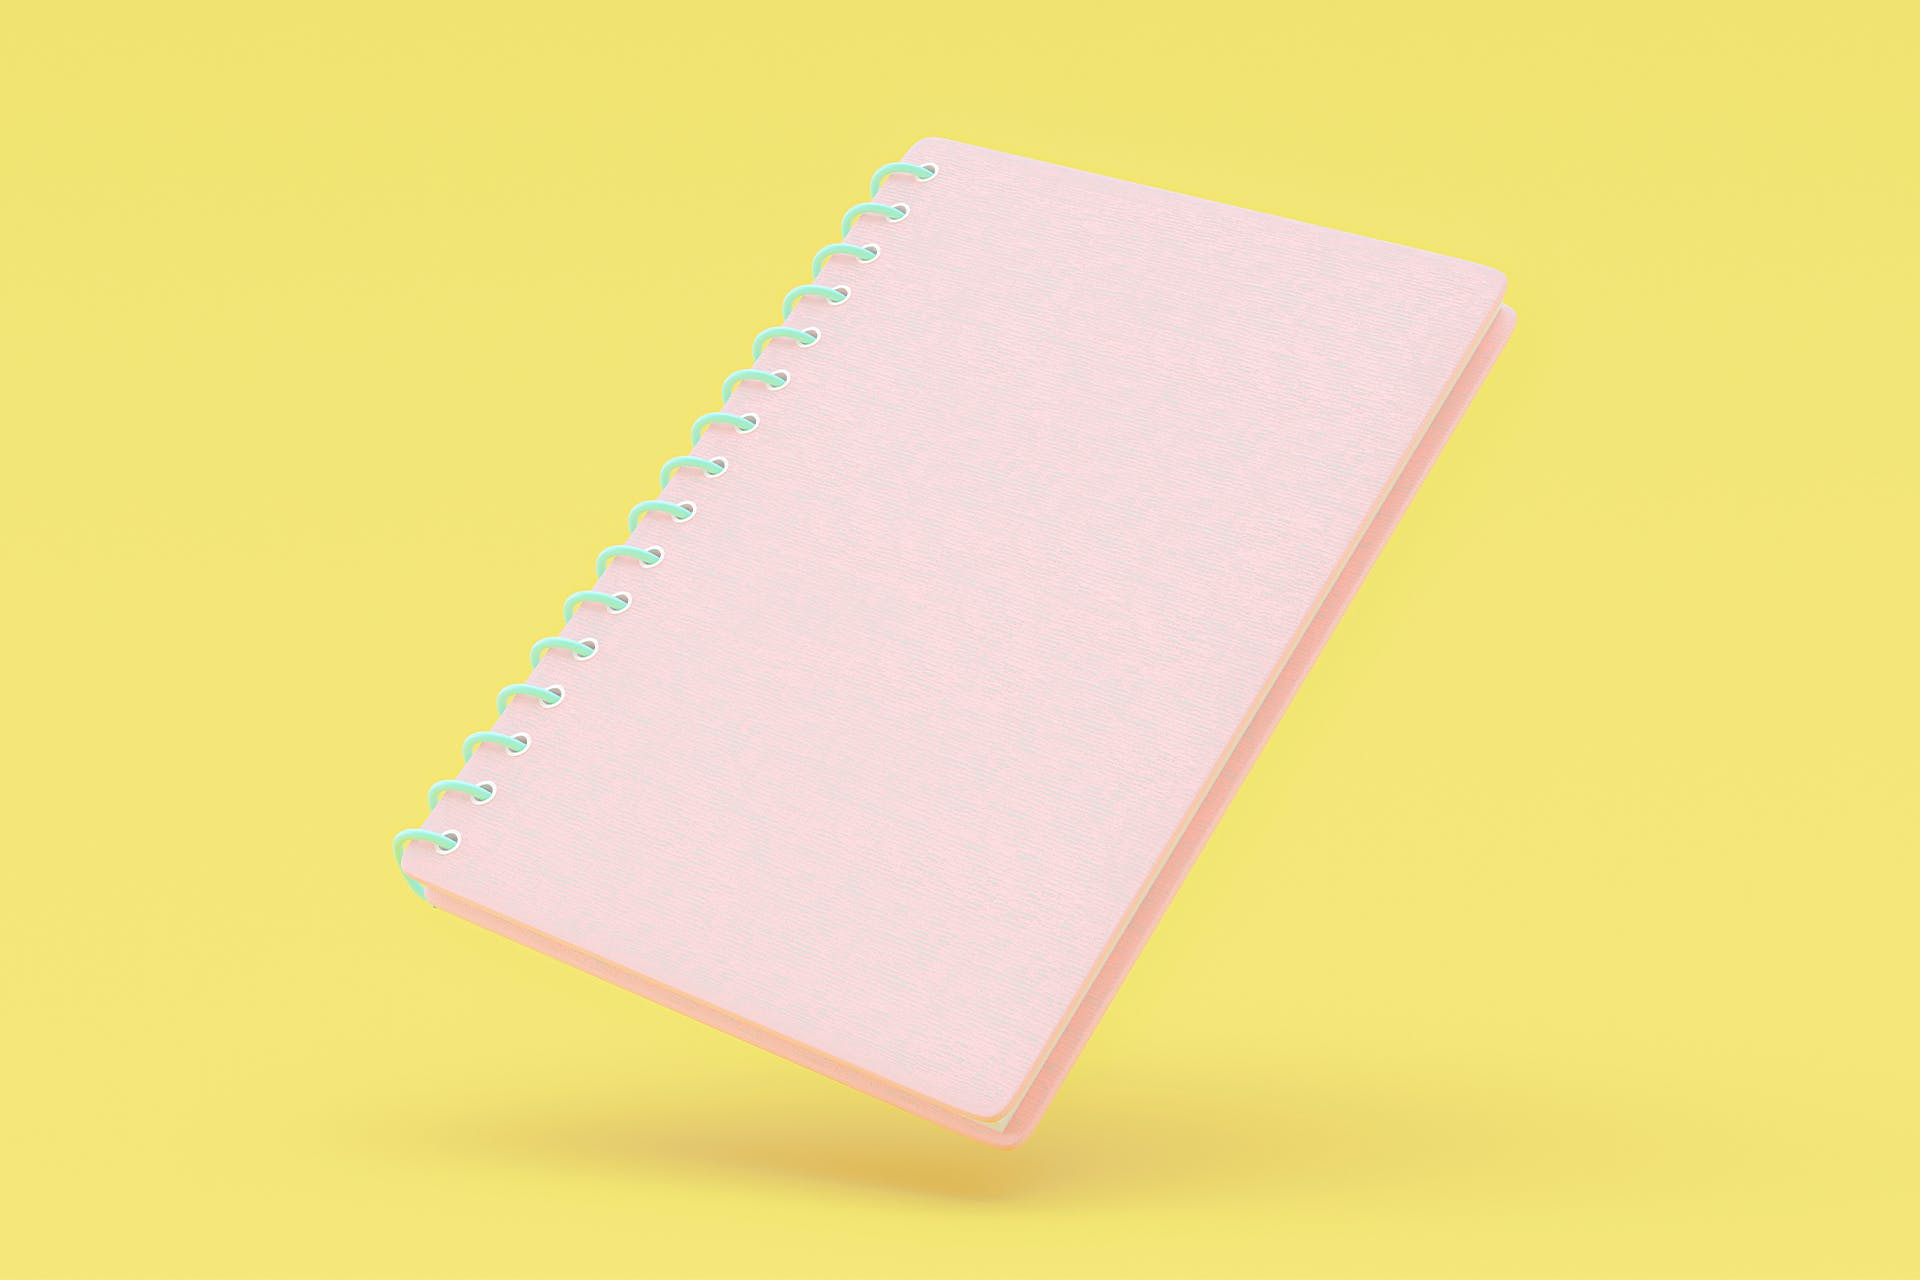 Light pink notebook on yellow background. 10 steps to writing a communication plan blog post